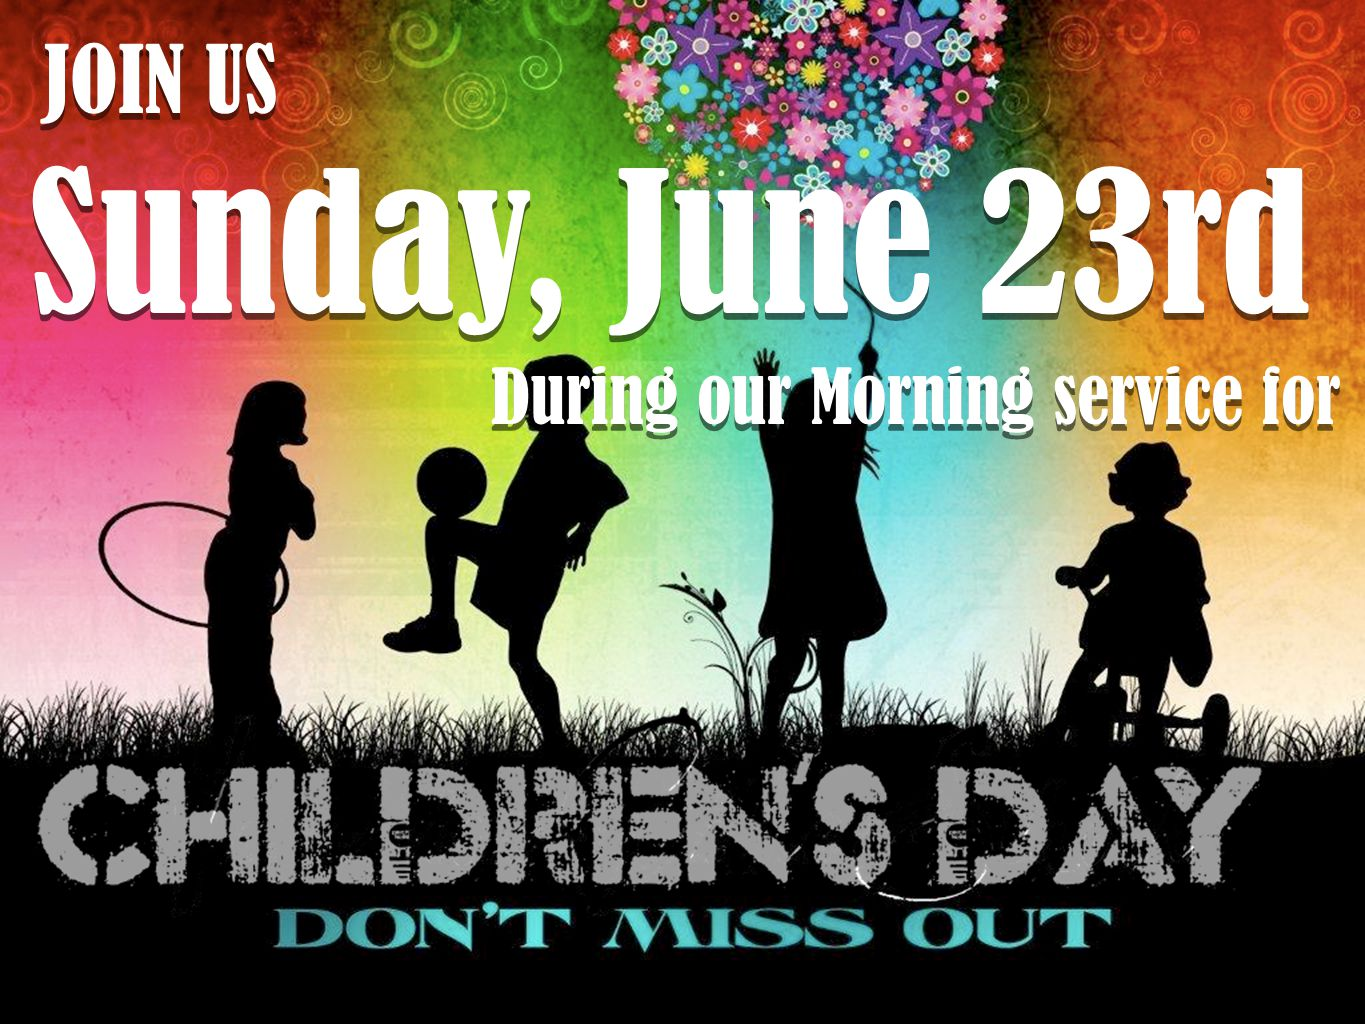 JOIN US Sunday, June 23rd During our Morning service for JOIN US Sunday, June 23rd During our Morning service for